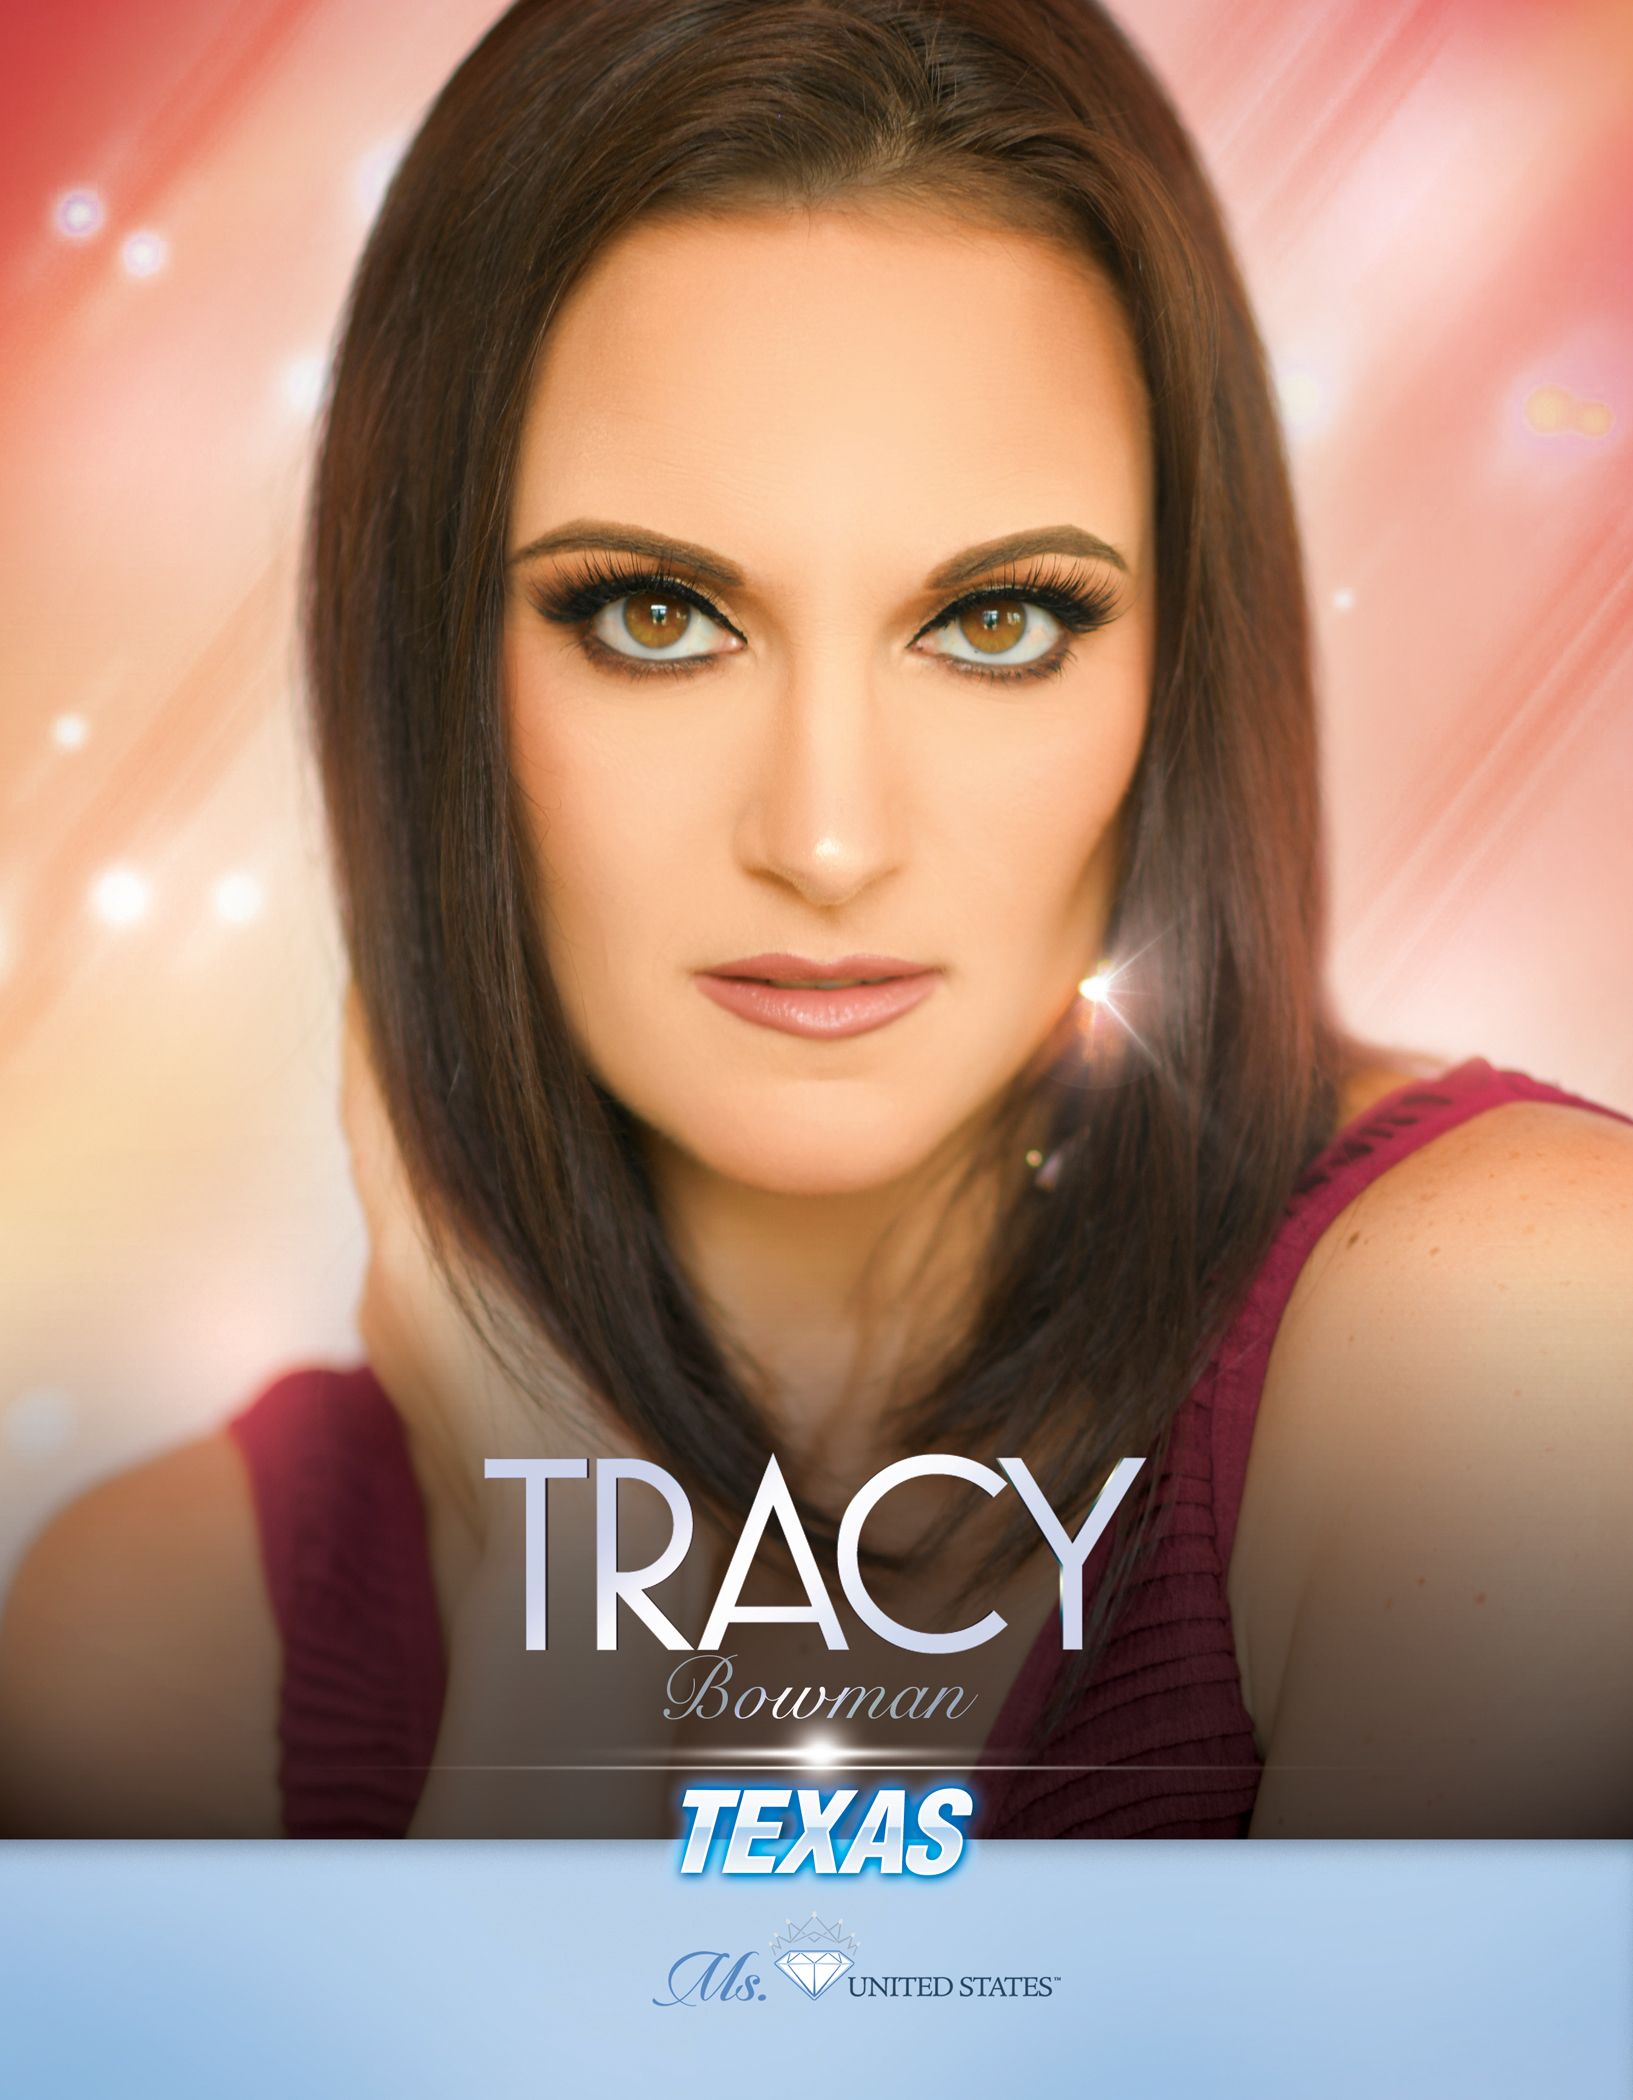 Tracy Bowman Ms. Texas United States - 2019